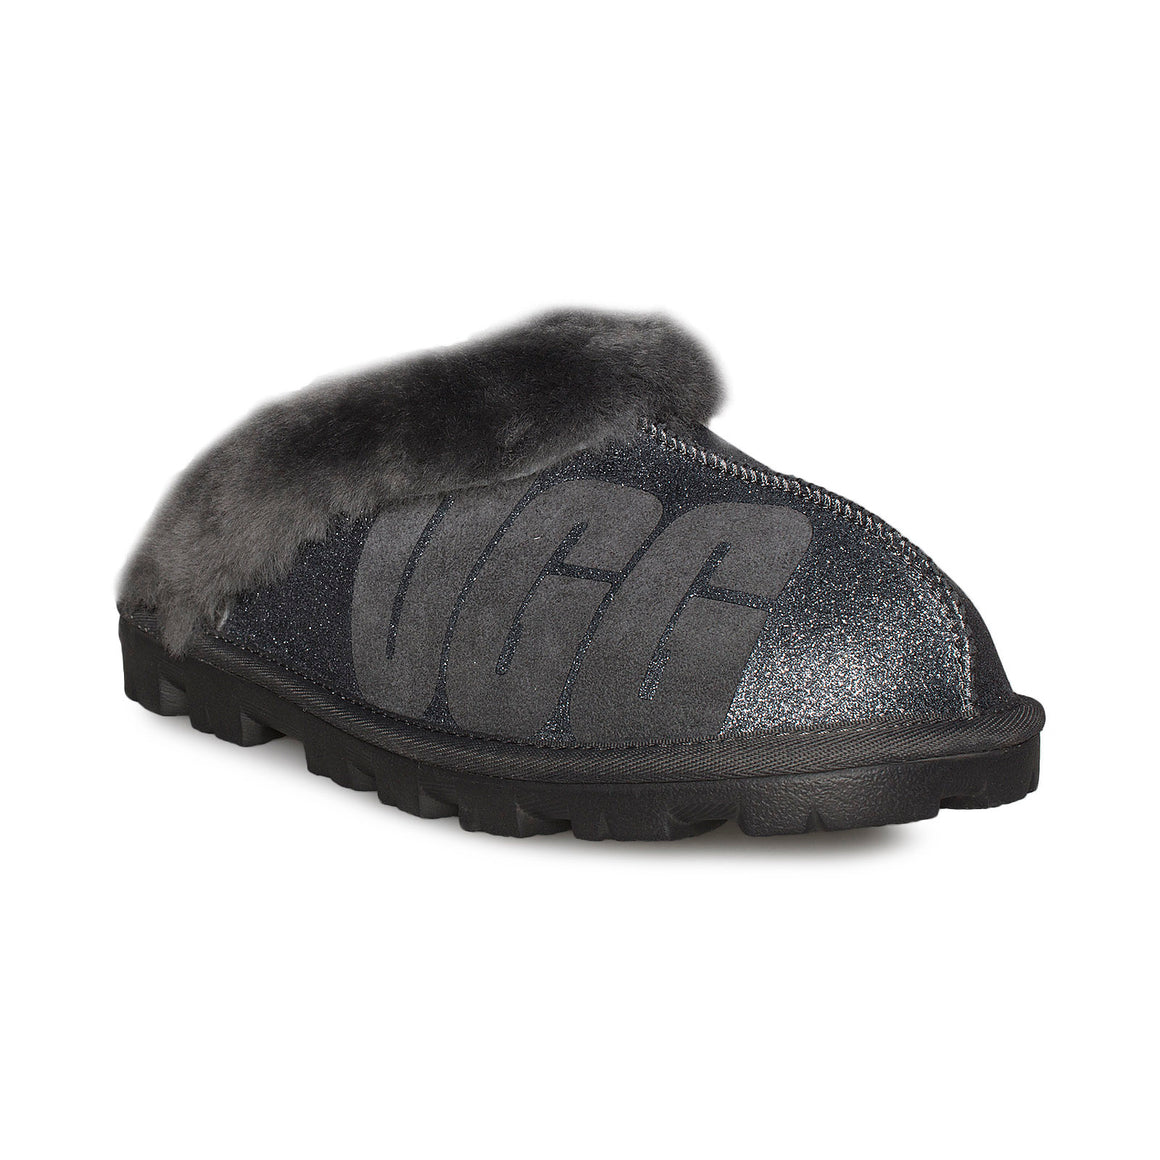 UGG Coquette Sparkle Charcoal Slippers - Women's